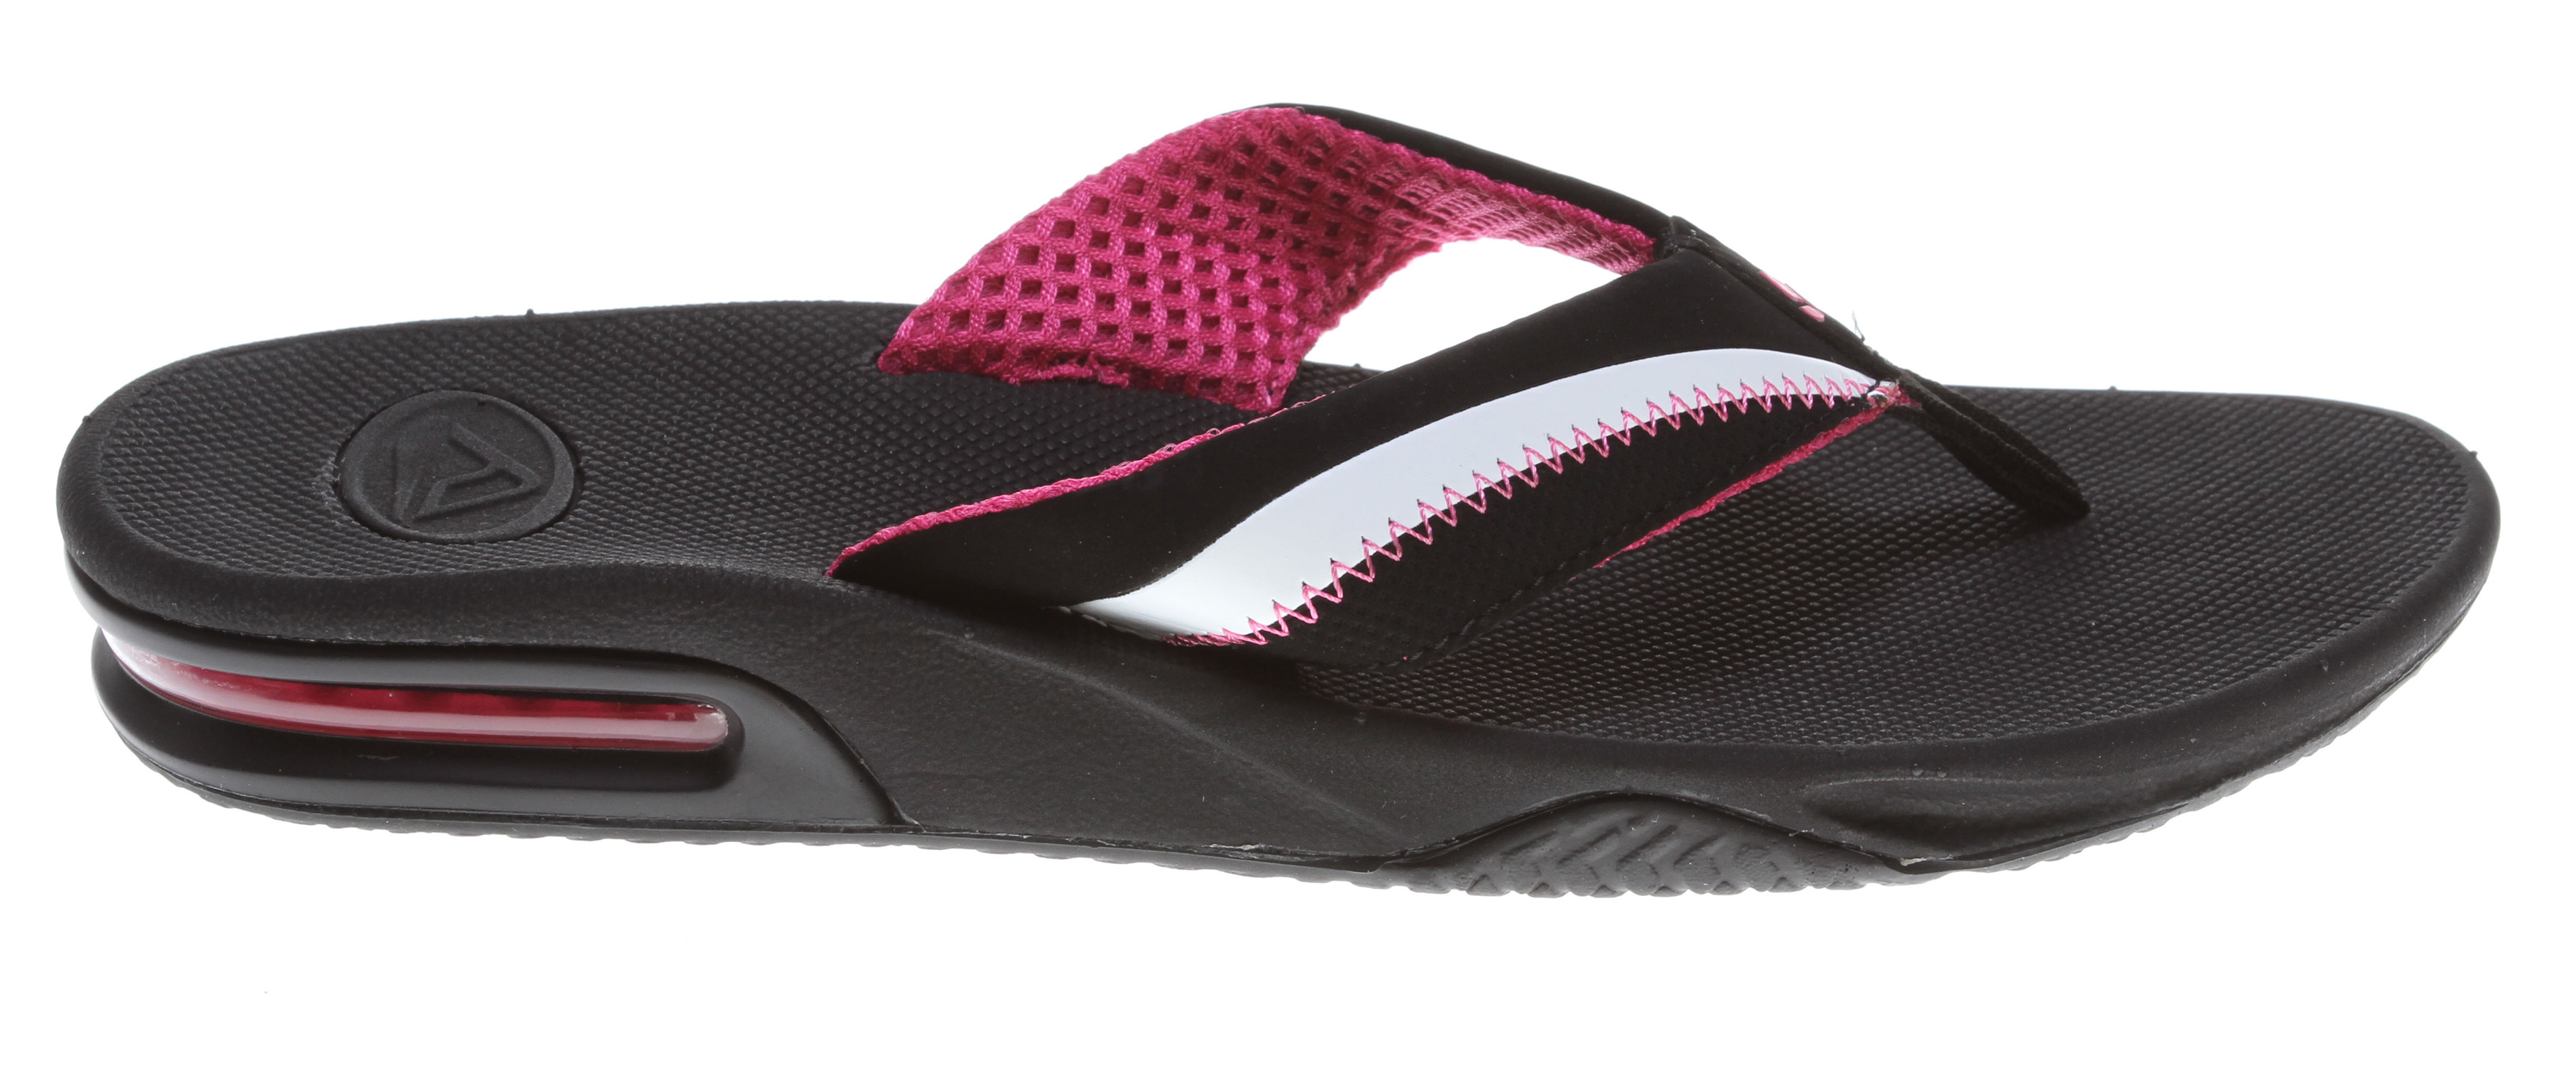 Surf The Reefedge Girl's Sporty sandal has a Water friendly synthetic Nubuck upper with soft mesh lining, Contoured EVA footbed with anatomical arch support, Full 360 degree heel airbag enclosed in soft polyurethane, and most importantly...a Church key to open your soda bottle.Key Features of the Reef Reefedge Sandals: Water friendly synthetic nubuck upper with soft mesh lining Contoured EVA footbed with anatomical arch support full 360 degree heel airbag enclosed in soft polyurethane Church key to open your soda bottle - $49.95